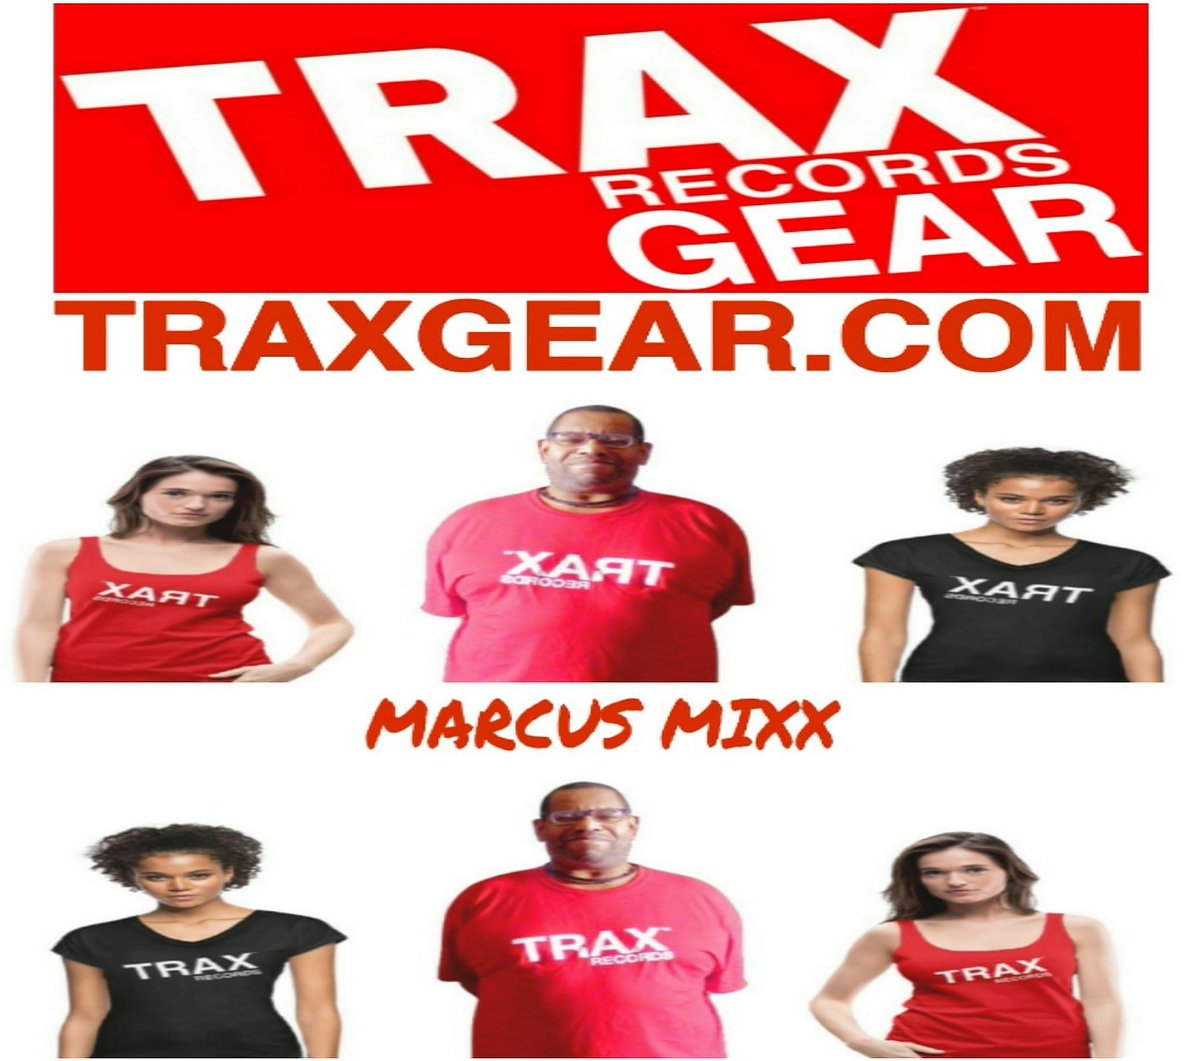 SHOW OFF YOUR #HOUSE @TRAXRECORDS #OFFICIAL #STORES #GIFTSHOPS   #SHOP #ONLINE #SHARE #LINK      #STAYHOME #STAYSAFE   #TRAXRECORDS #HOUSEMUSIC #DANCE #PARTY #LGBTQ #LOVE #FRIENDS #LIKE #SMILE  @SCREAMINRACHAEL @RACHAELCAIN @MARCUSMIXX #MARCUSMIXX #COVID19